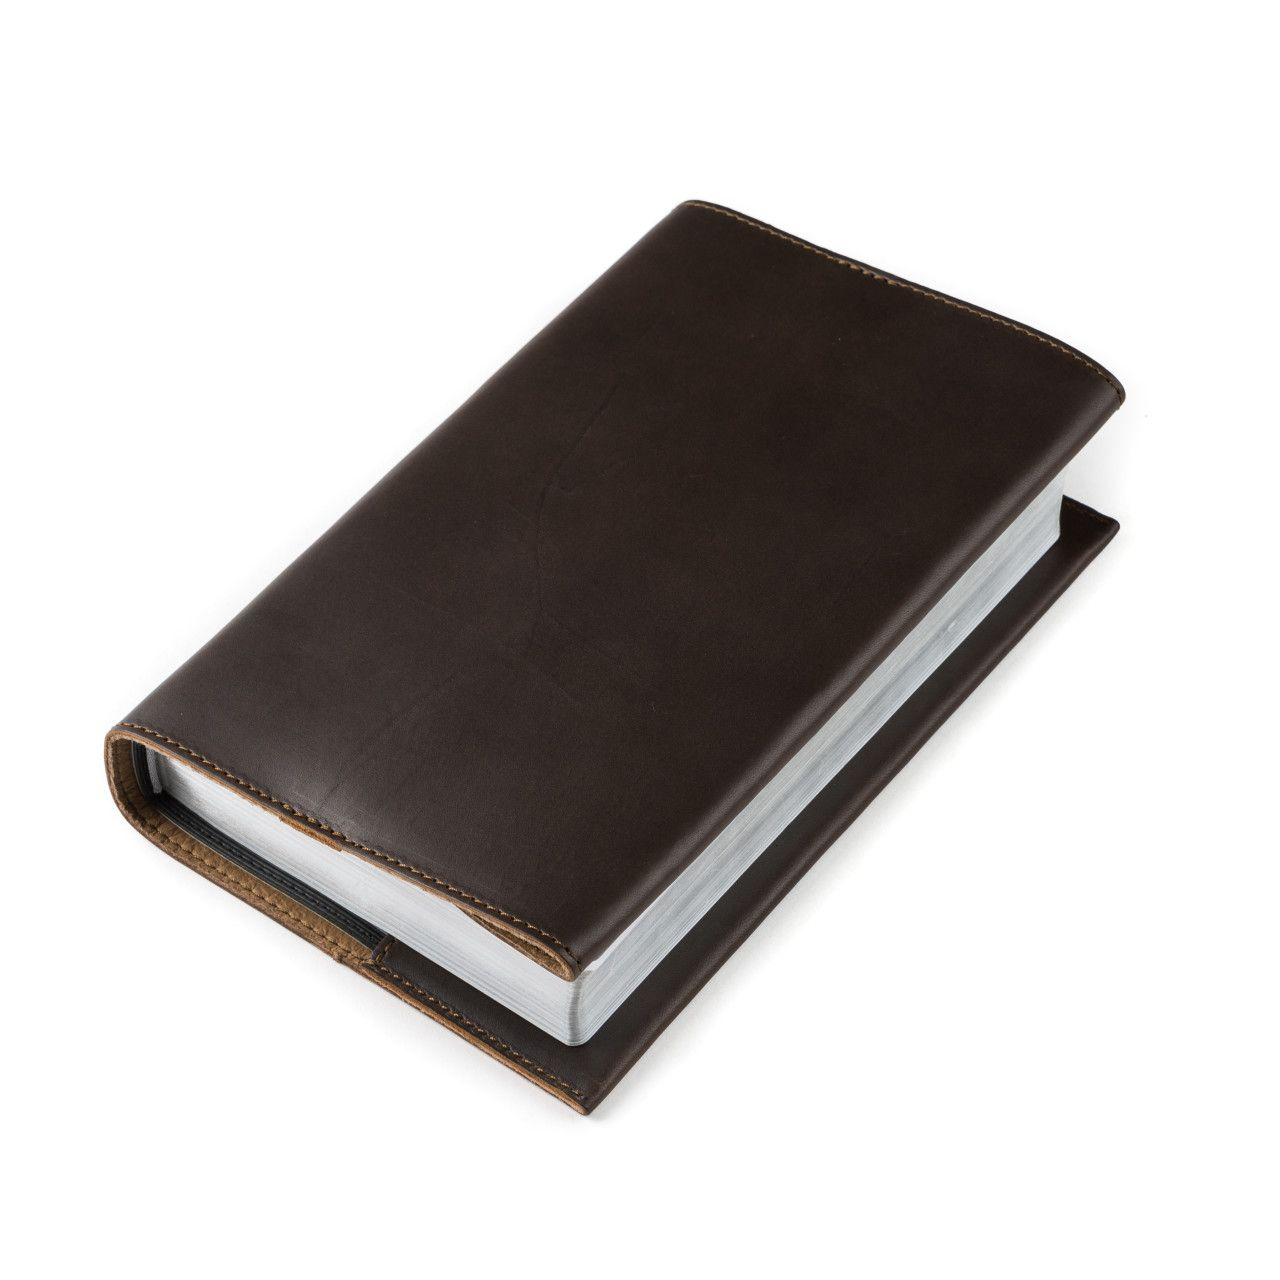 leather book cover medium in dark coffee brown leather